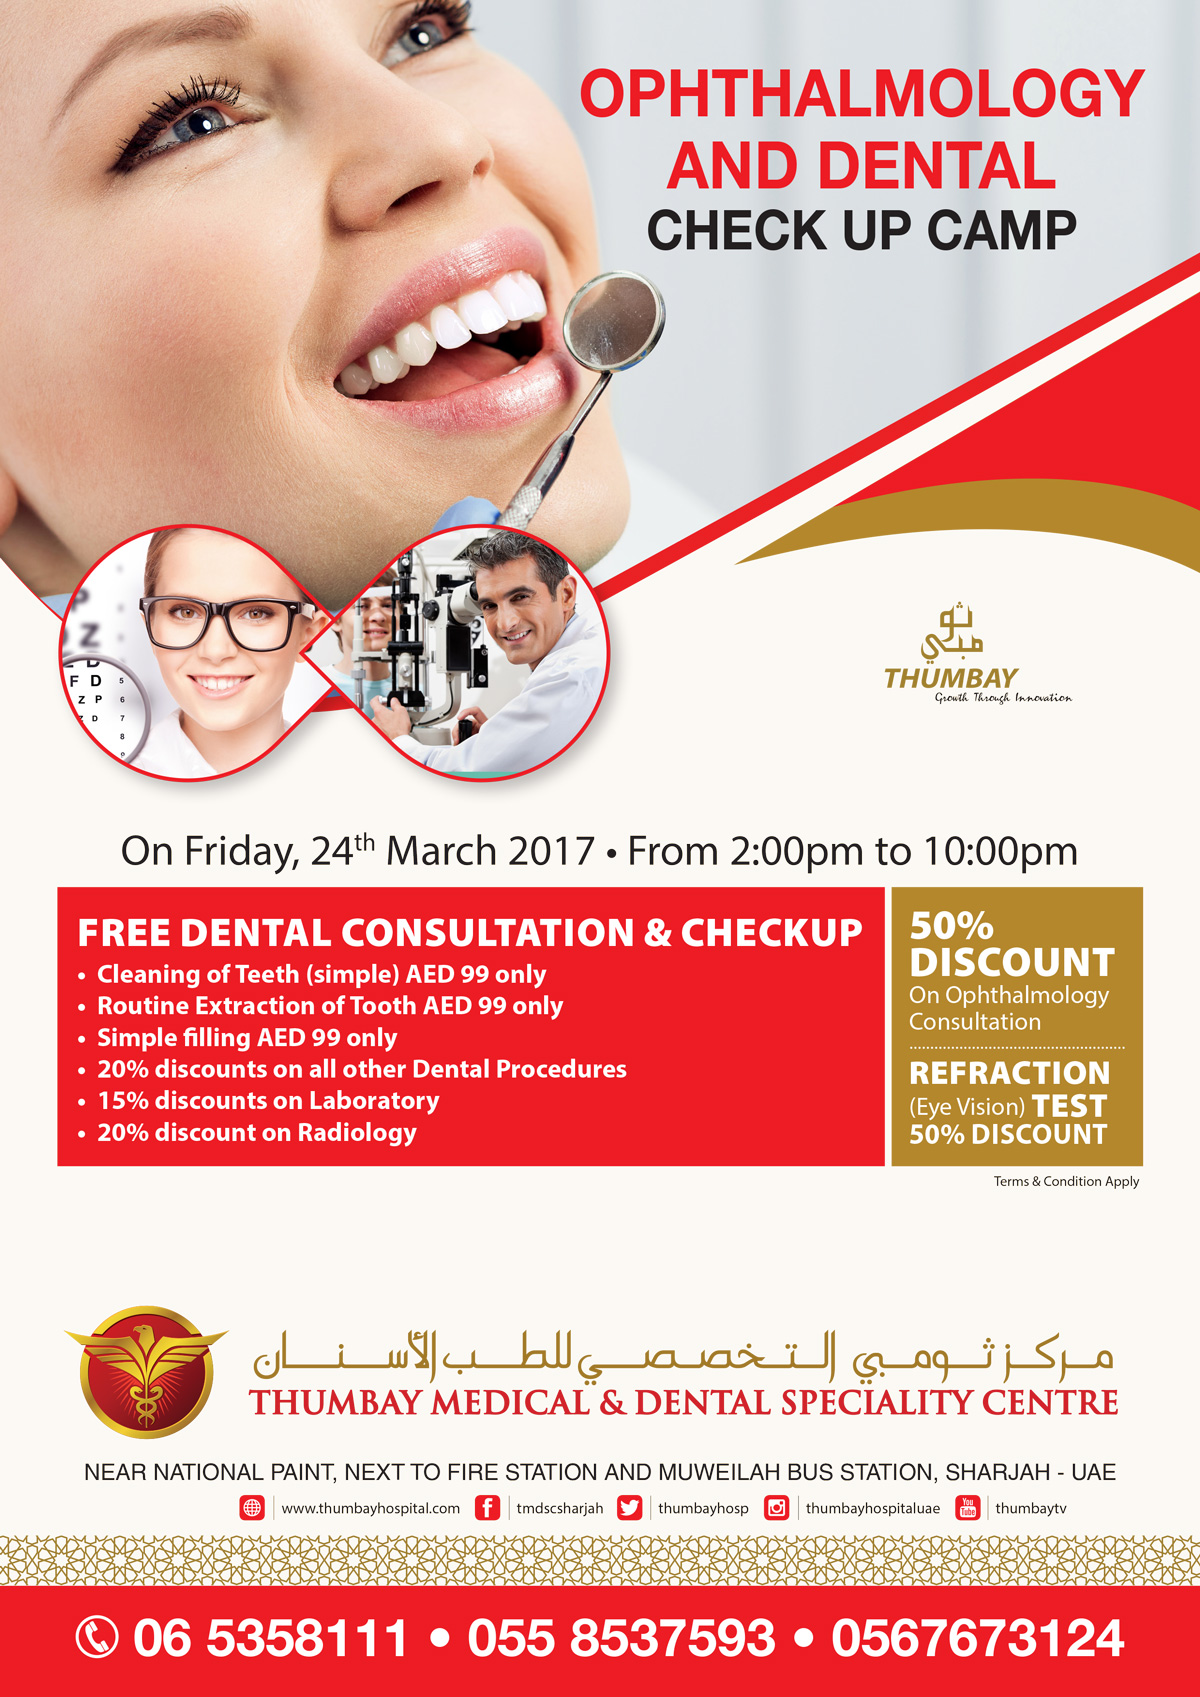 Ophthalmology and Dental Check Up Camp